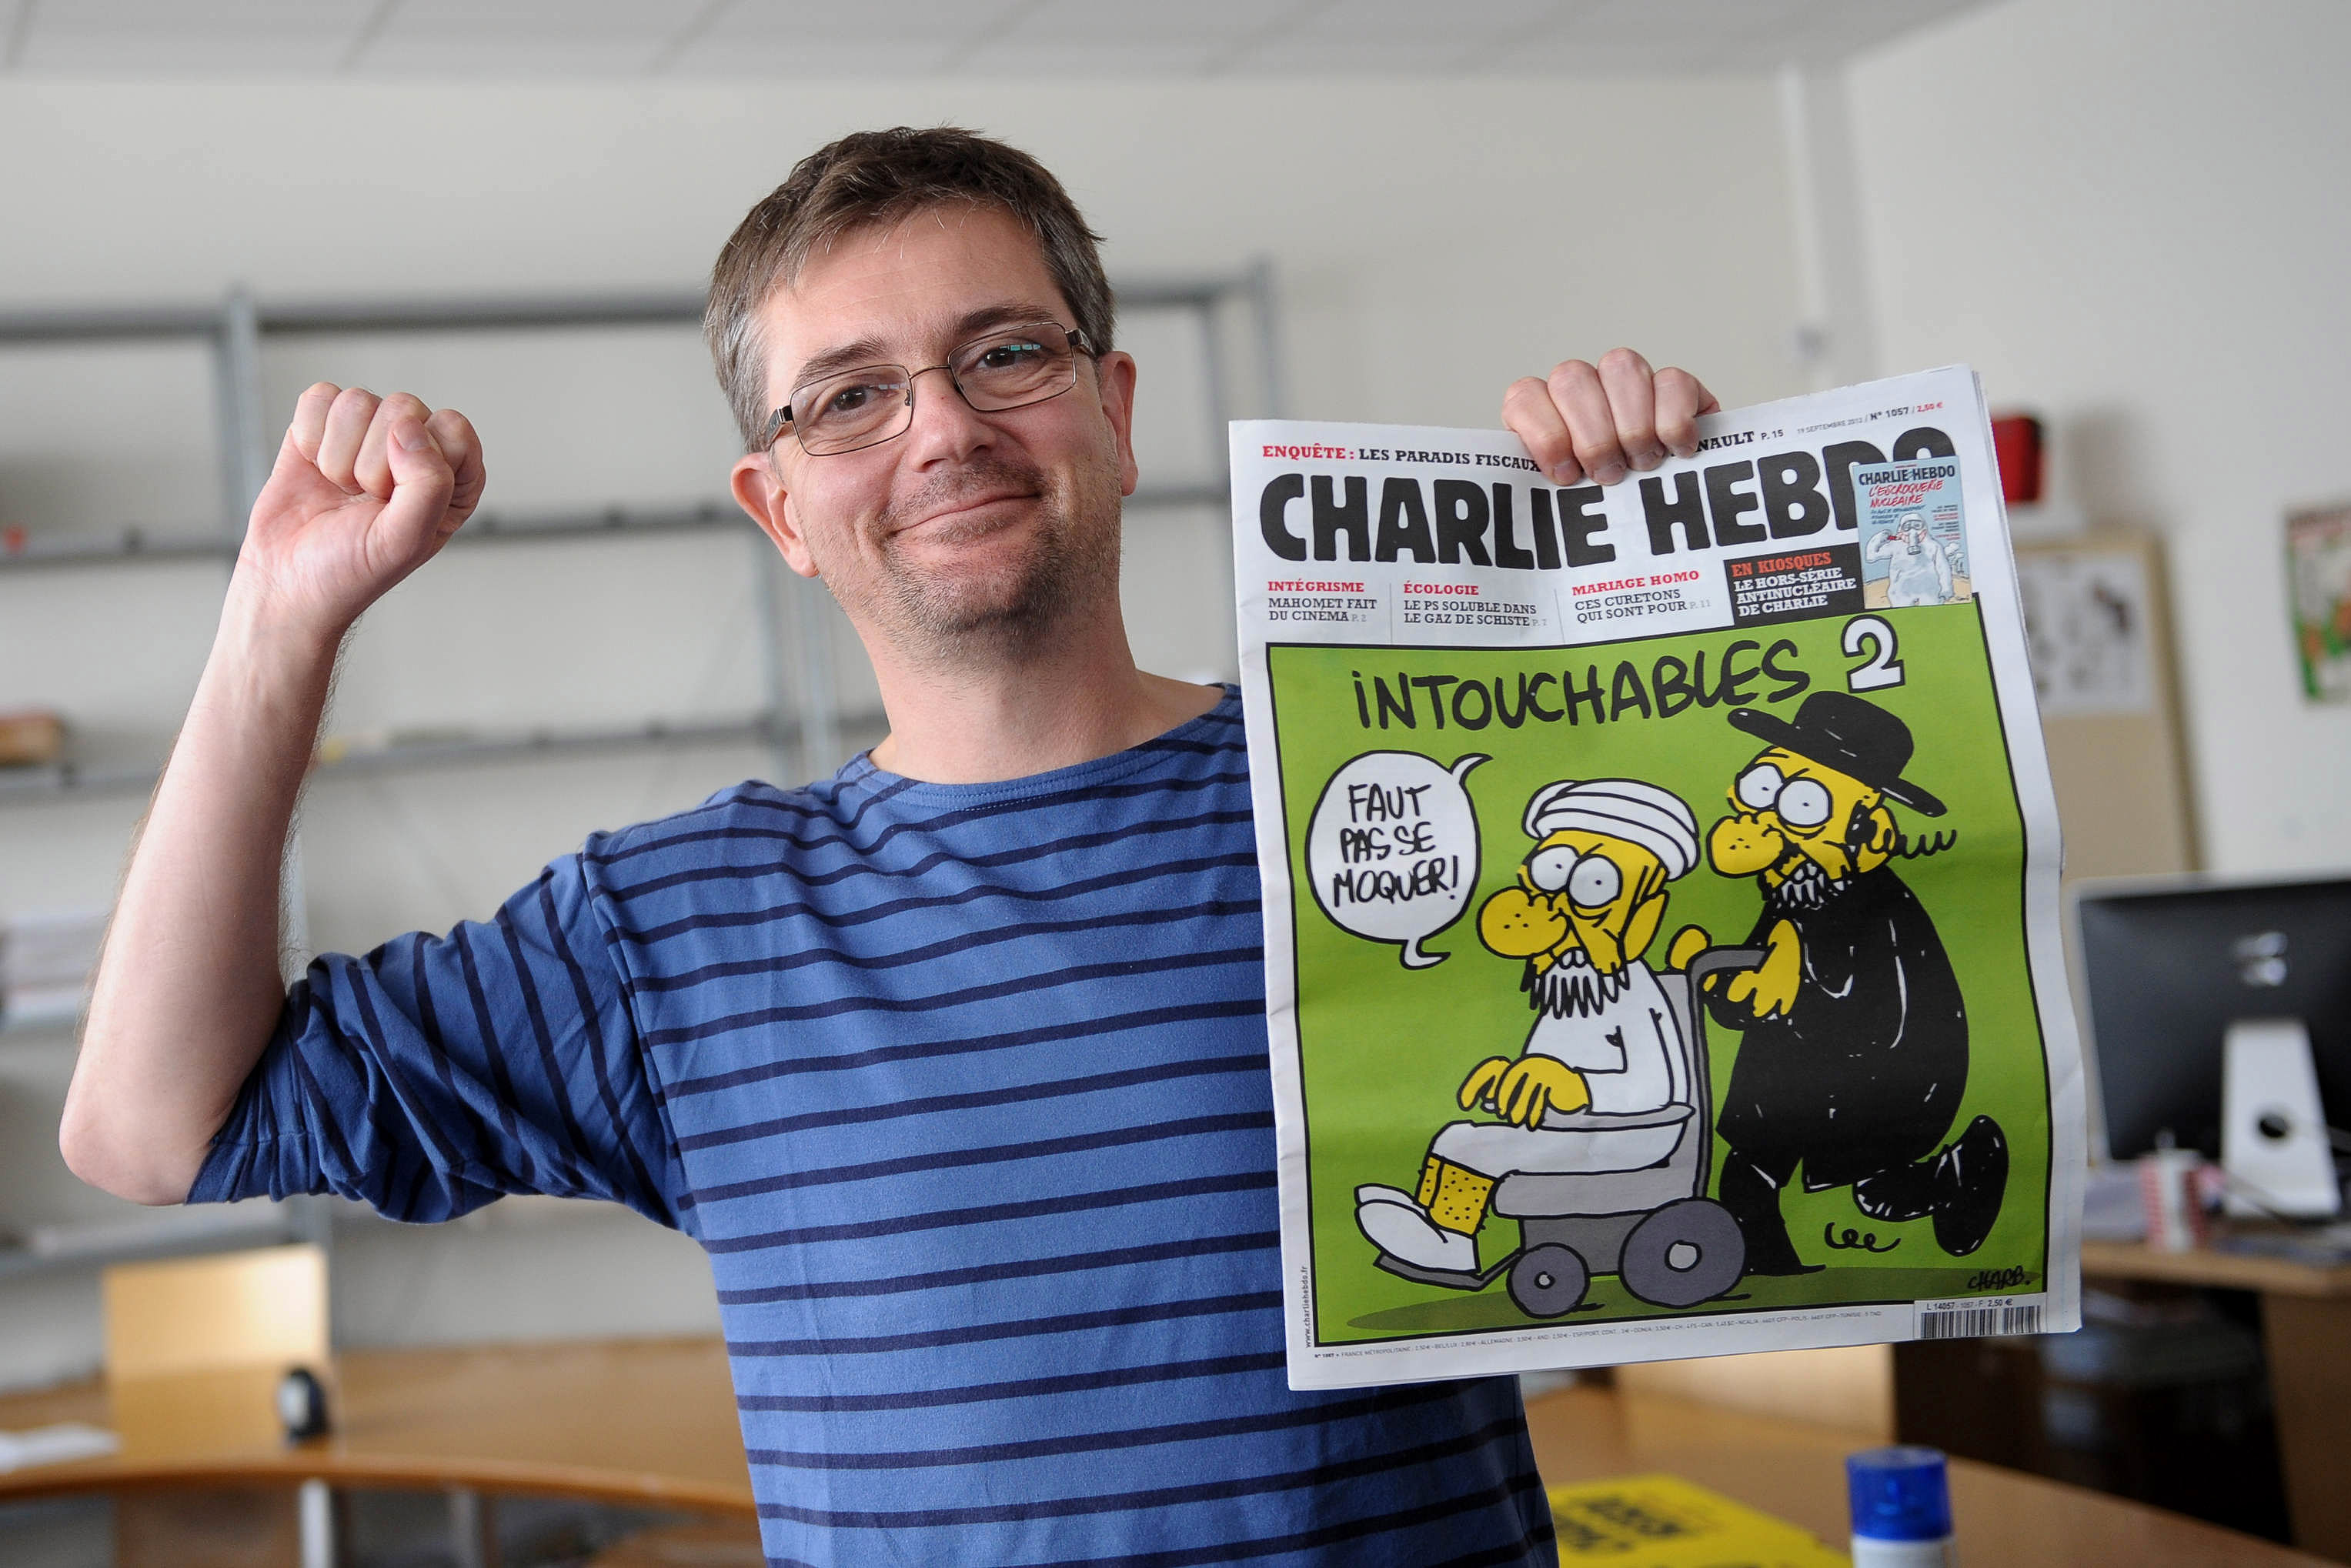 Stephan Charbonier, former editor-in-chief of CHarlie Hebdo, was among those killed in the attack in Paris on Jan. 7